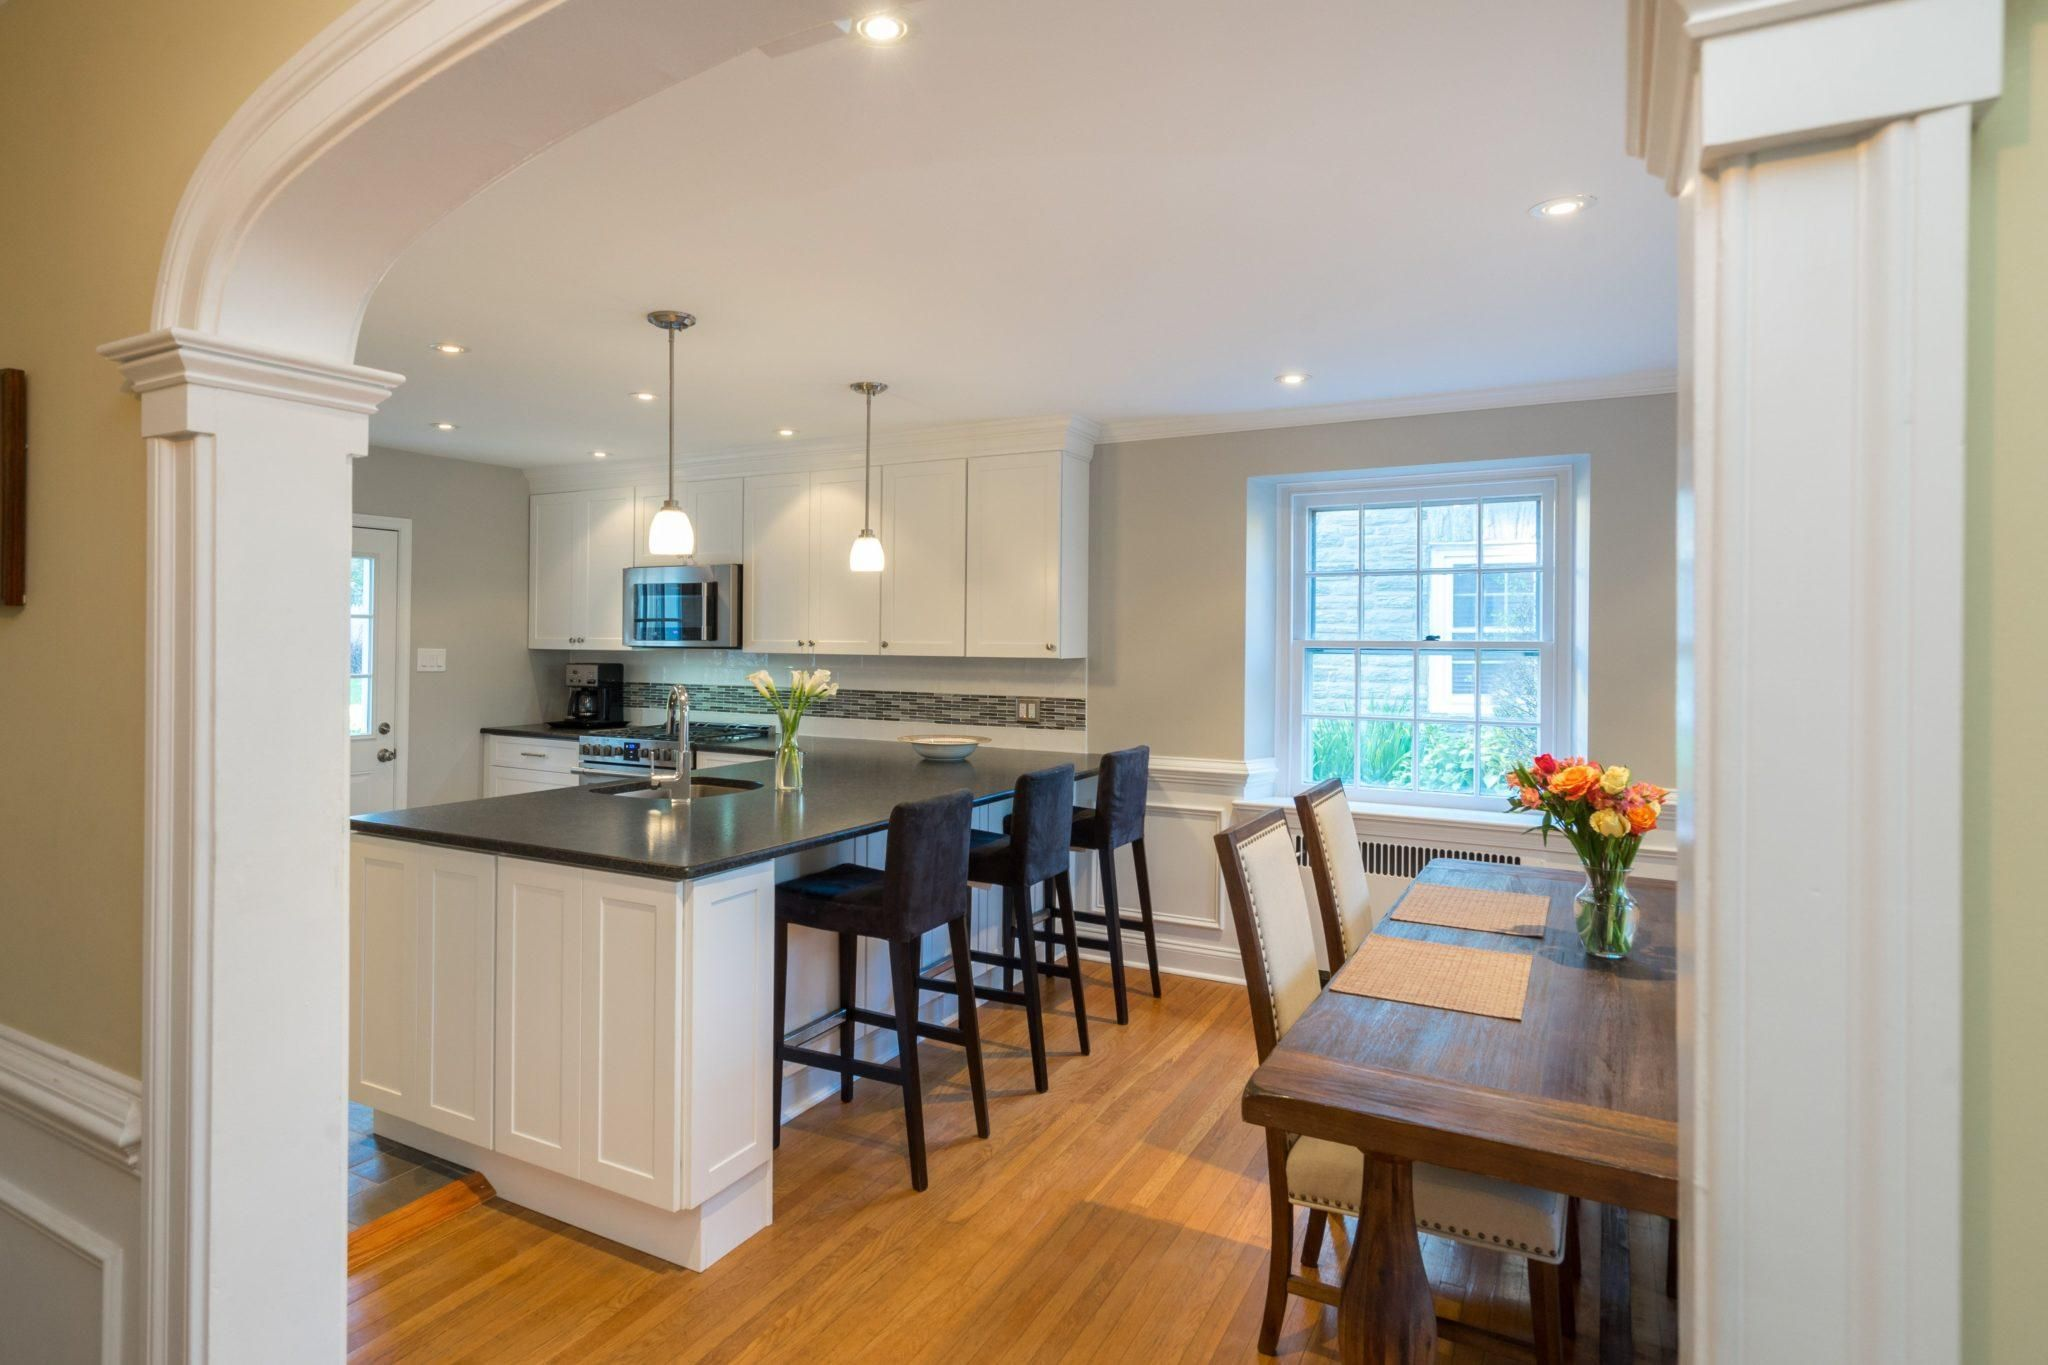 Best American Made Kitchen Cabinets In 2020 Kitchen Cabinets